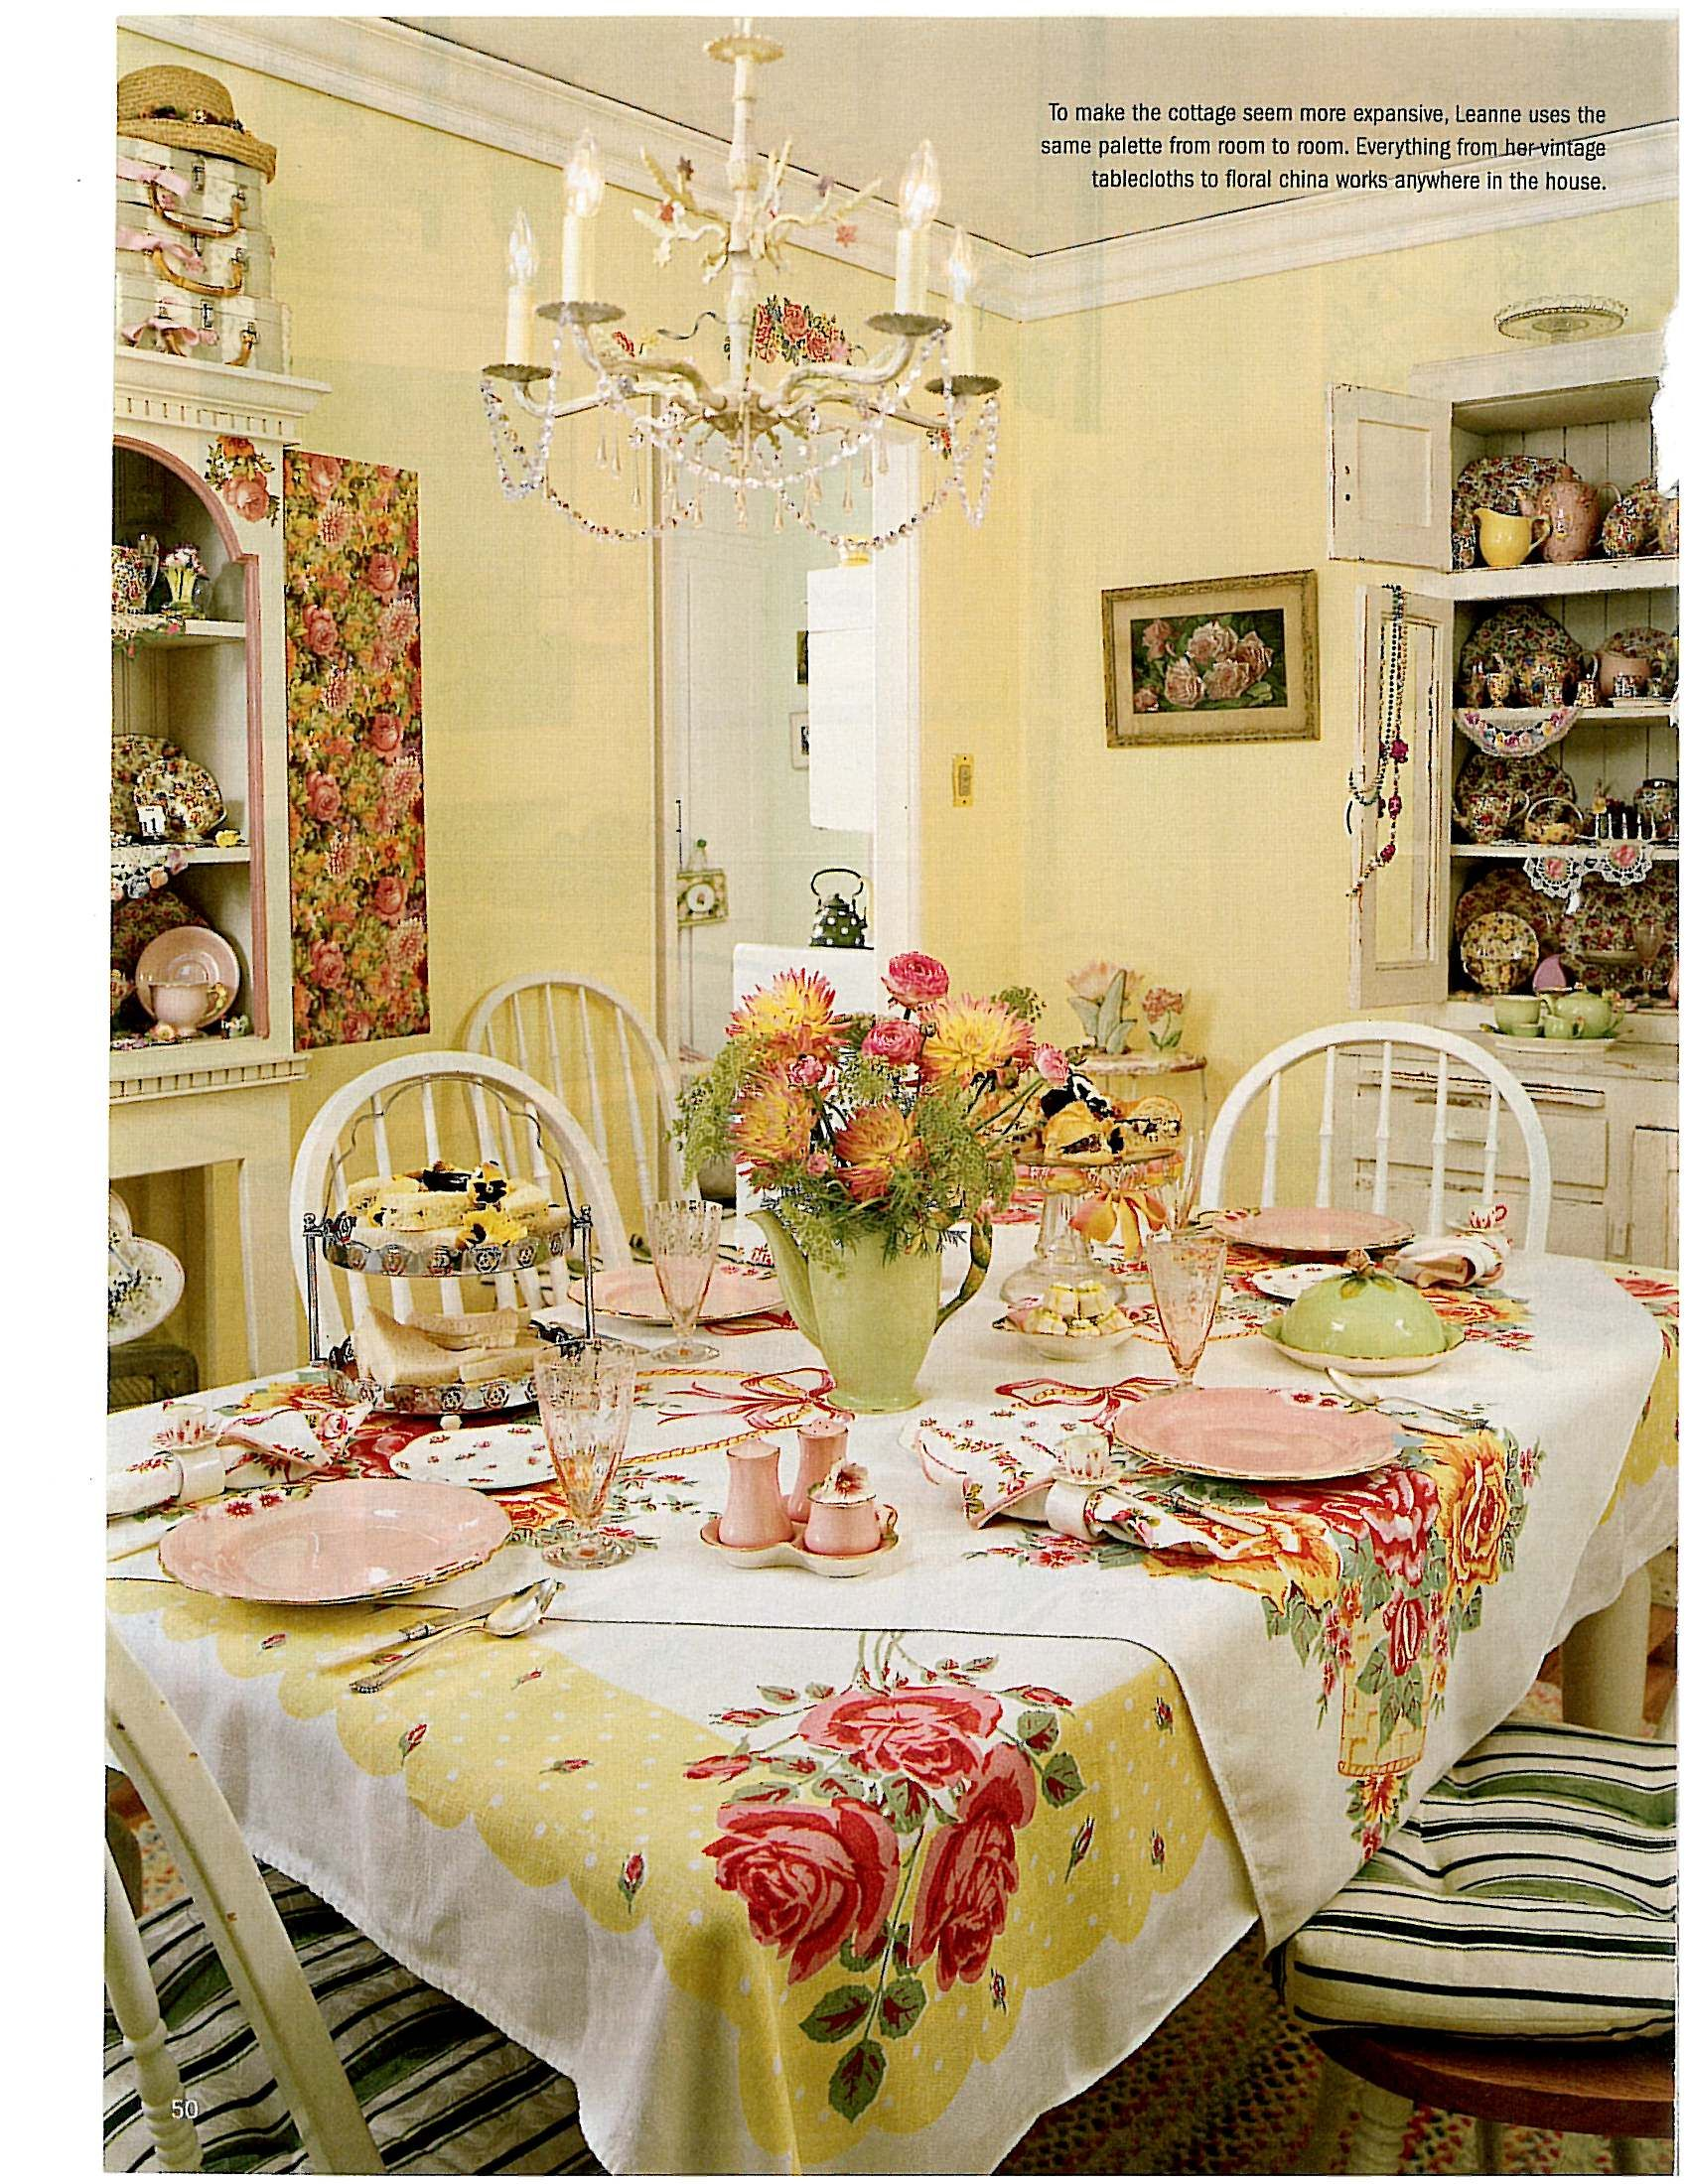 The Vintage Tablecloths Layered Are Clever Add A Lot Of Color Personality Cheerful Yellow Dining RoomDining